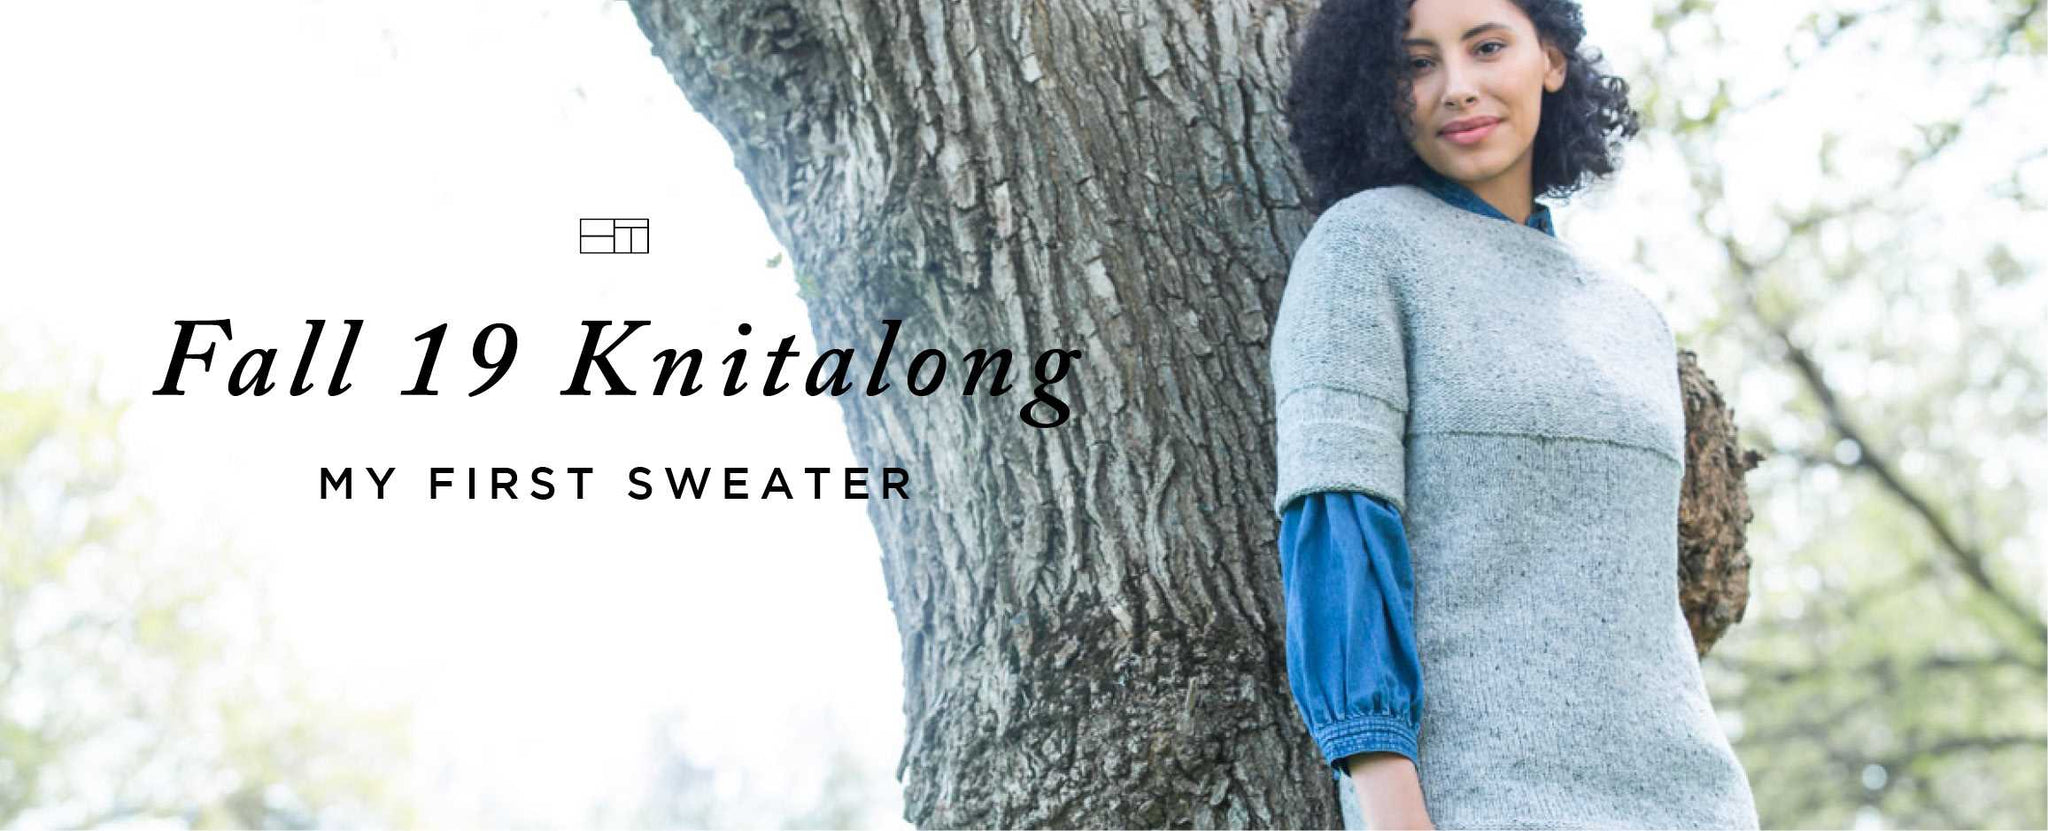 Fall 19 Knitalong: My First Sweater